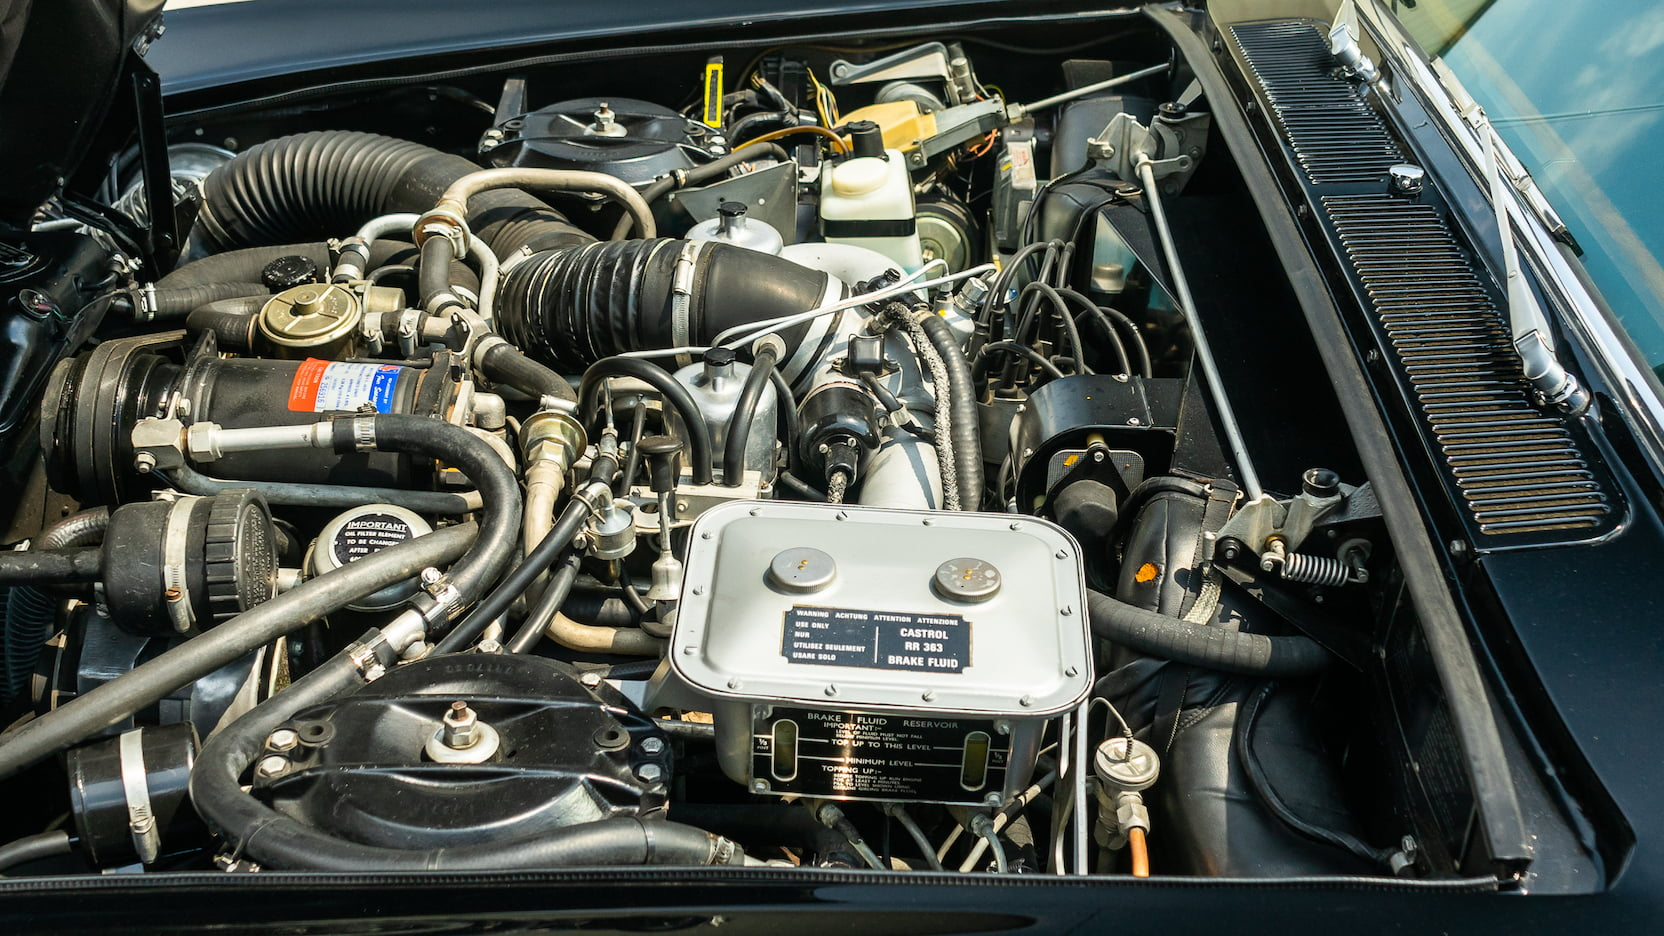 1971 Rolls-Royce Silver Shadow engine